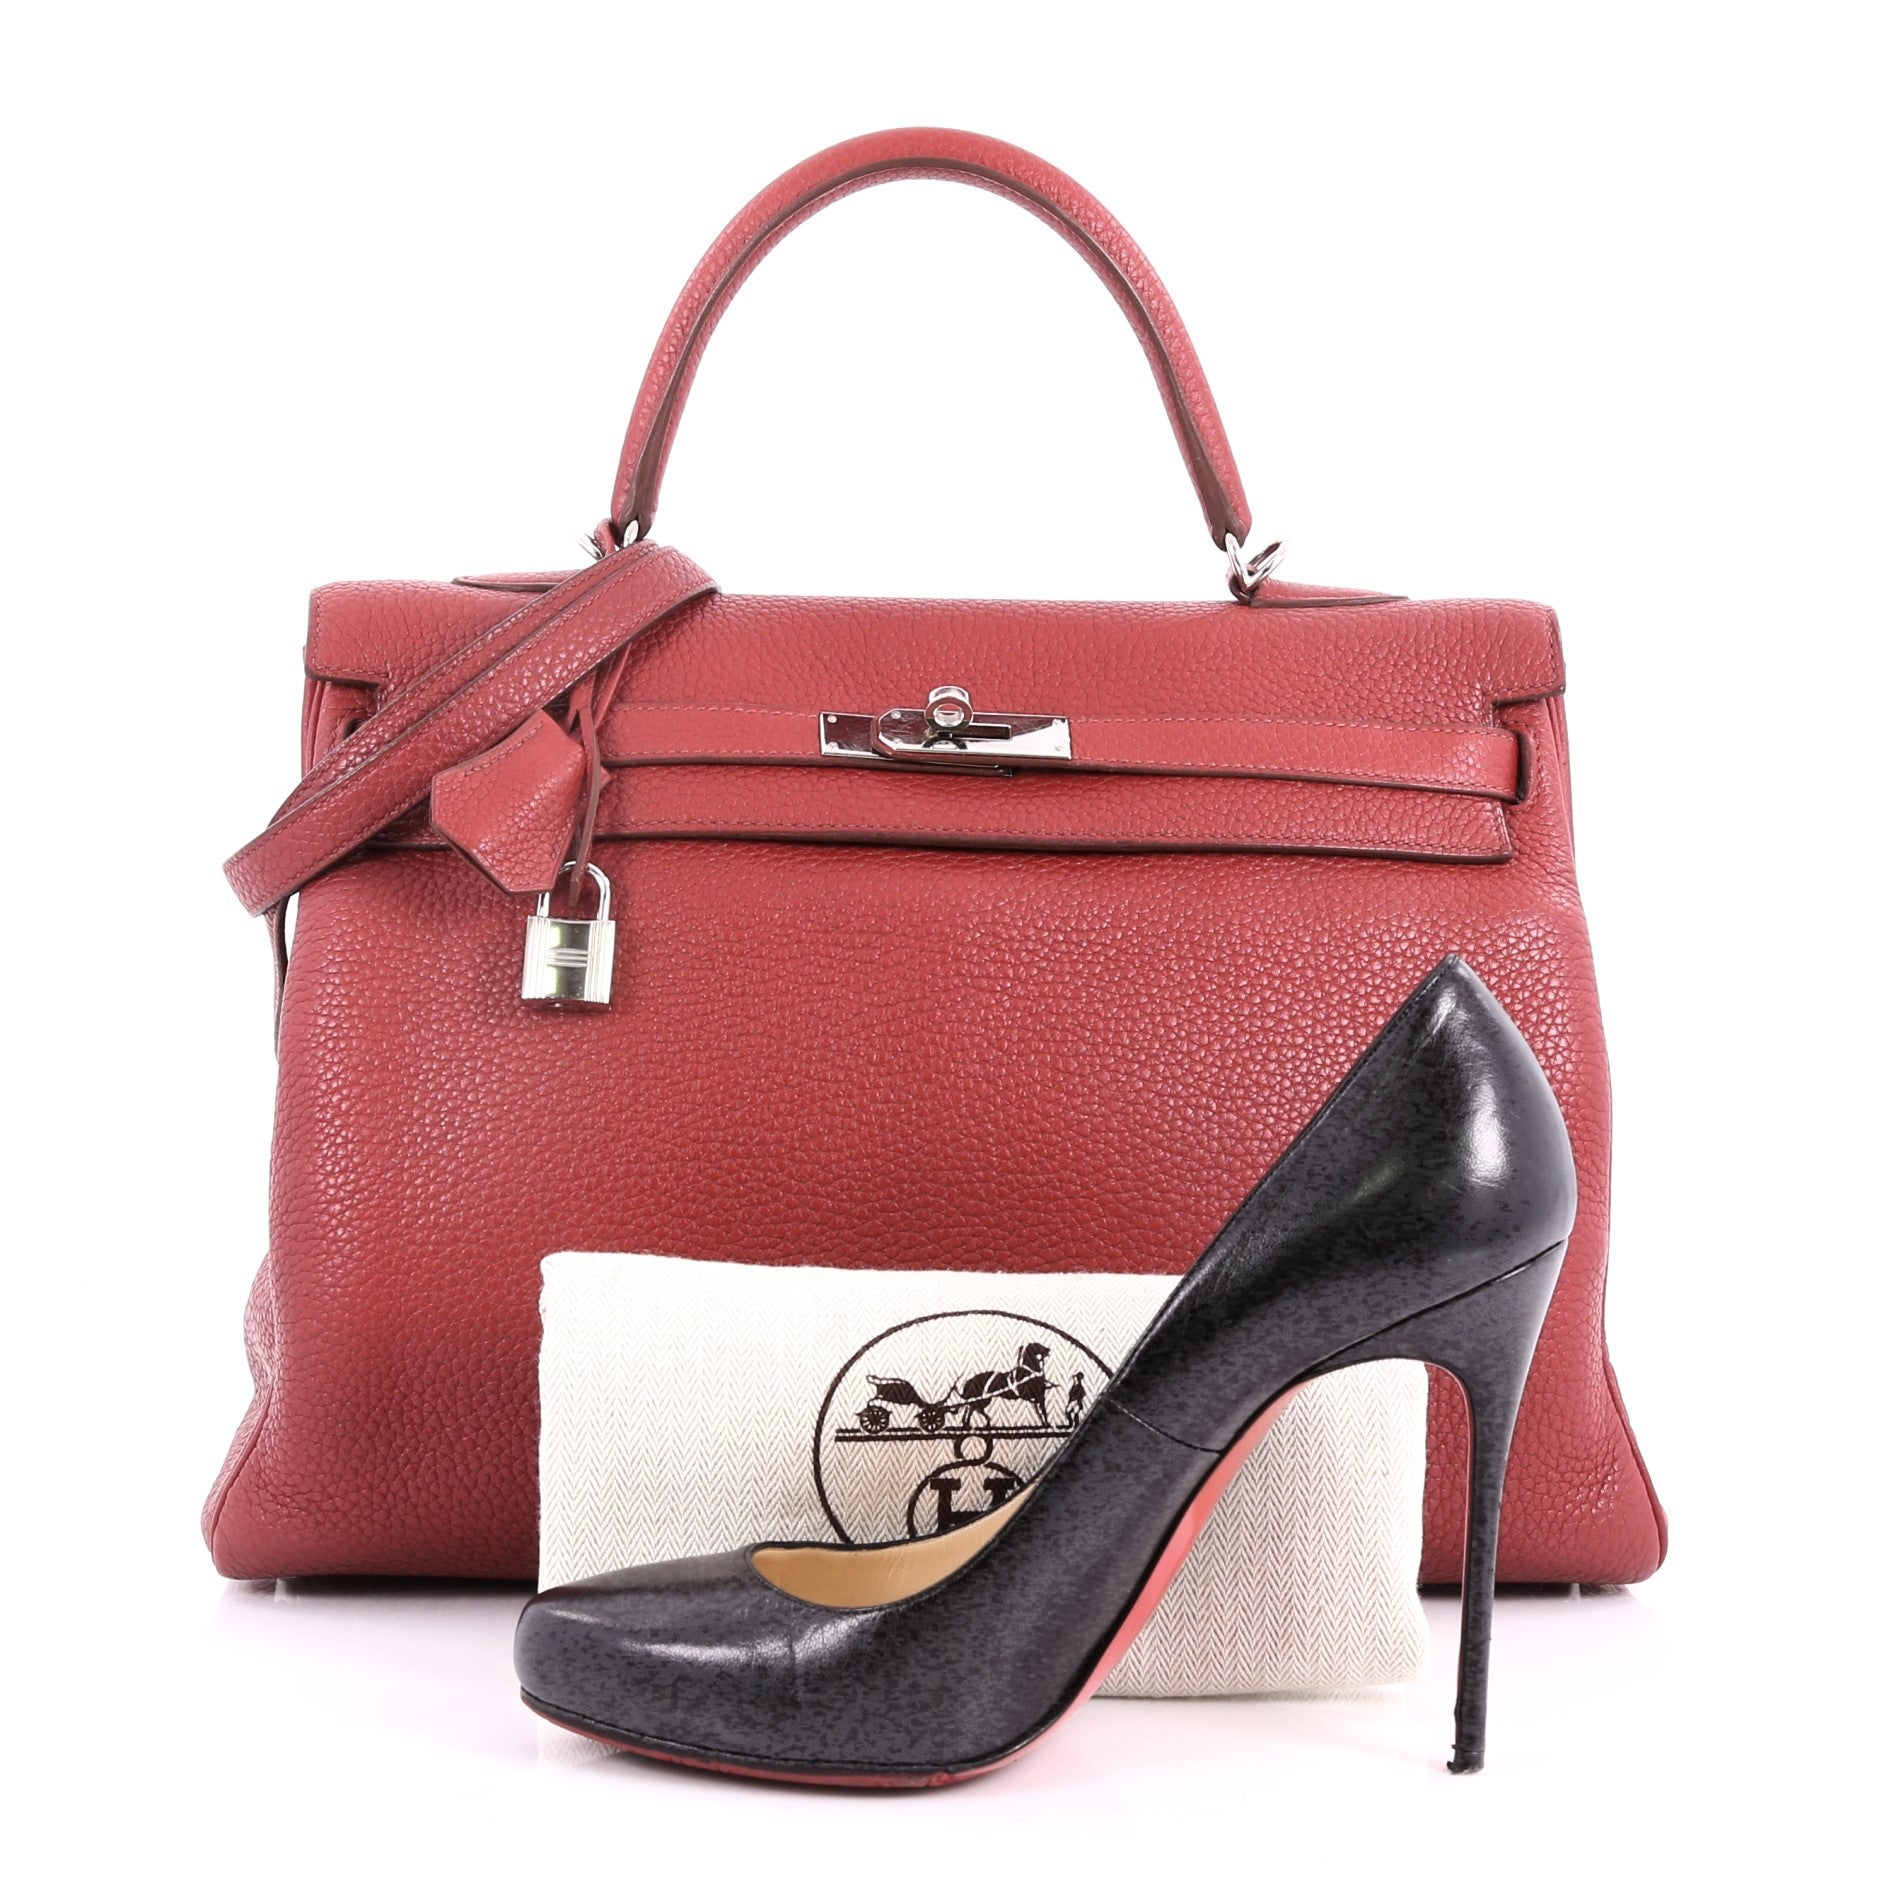 349d37840c32 Hermes Kelly Handbag Rouge Garance Clemence with Palladium Hardware 35 For  Sale at 1stdibs